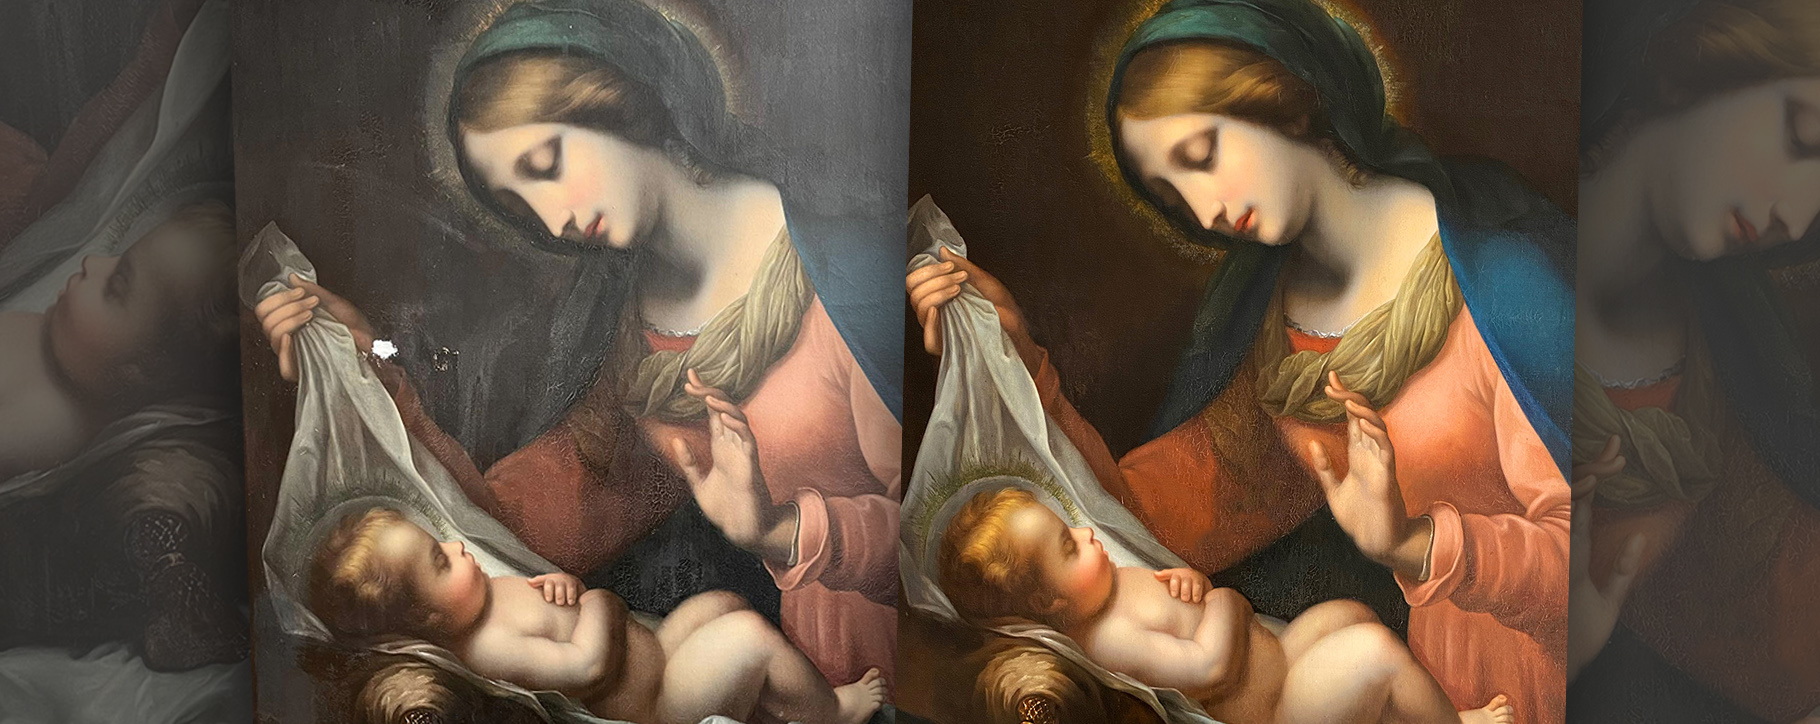 Virgin Mary Painting Before After